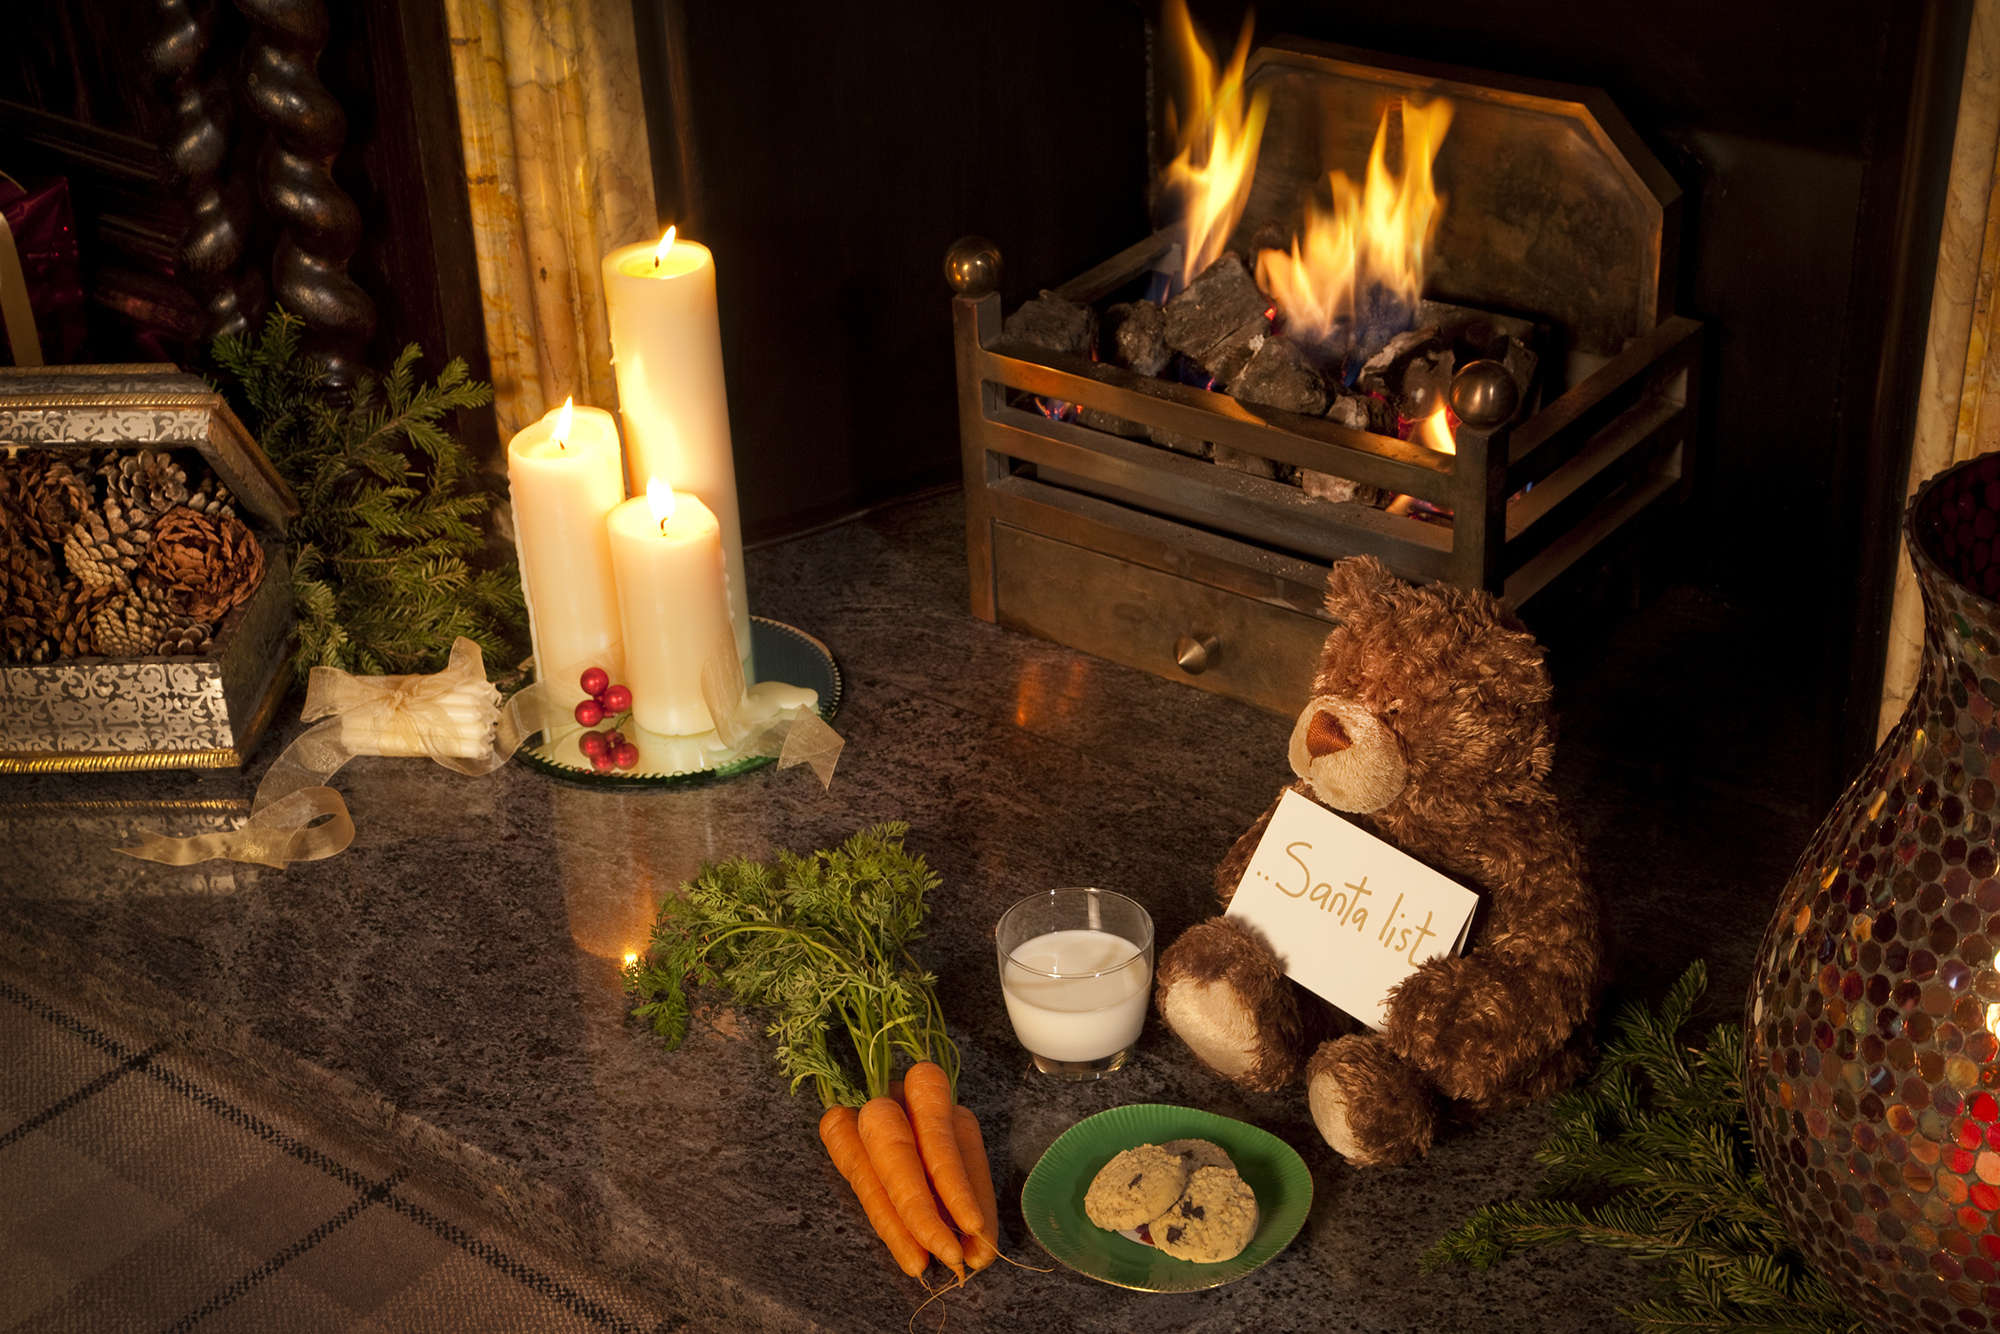 Bear with Santa's list and a cosy fire place